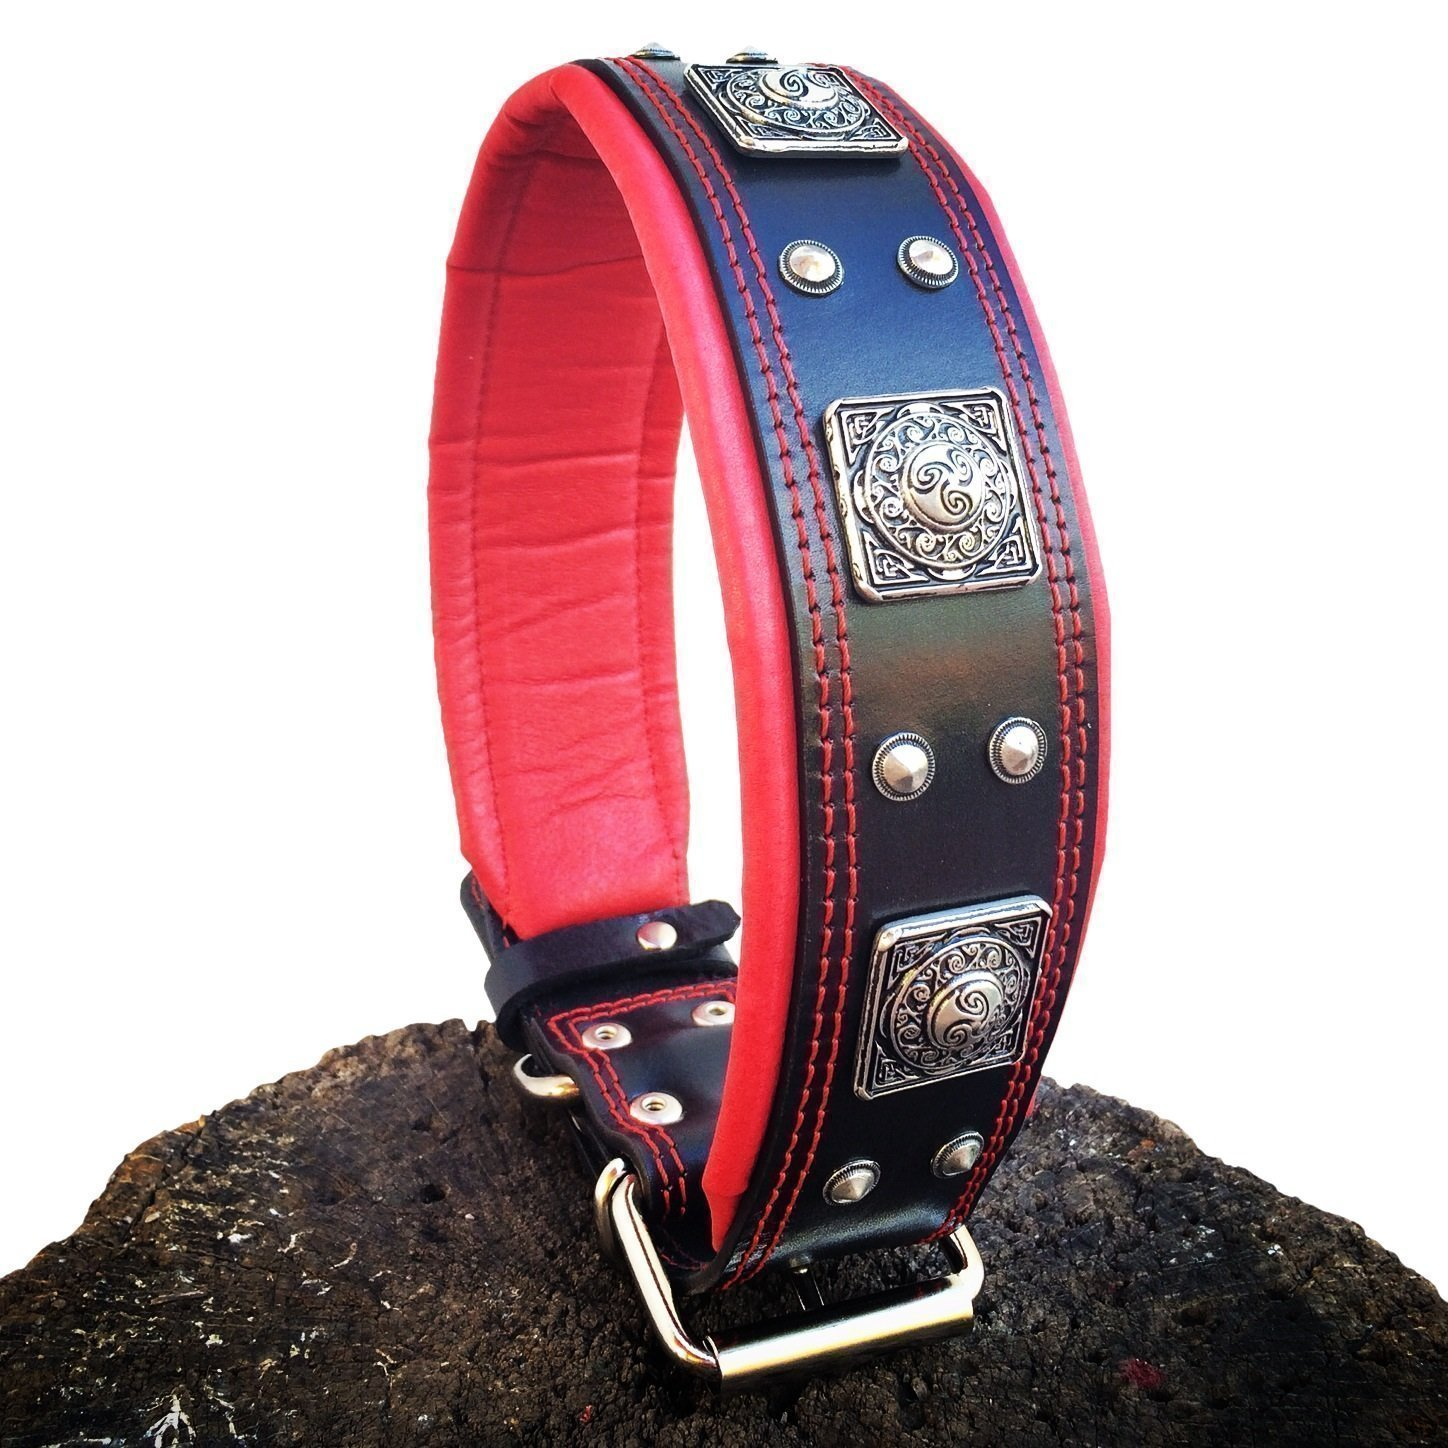 M- fits a neck of 16.7 20.6 inch Bestia EROS Genuine Leather Dog Collar, Large Breeds, Cane Corso, redtweiler, Boxer, Bullmastiff, Dogo, Quality Dog Collar, 100% Leather, Studded, L- XXL Size, 2.5 inch Wide. Padded. Made in Europe